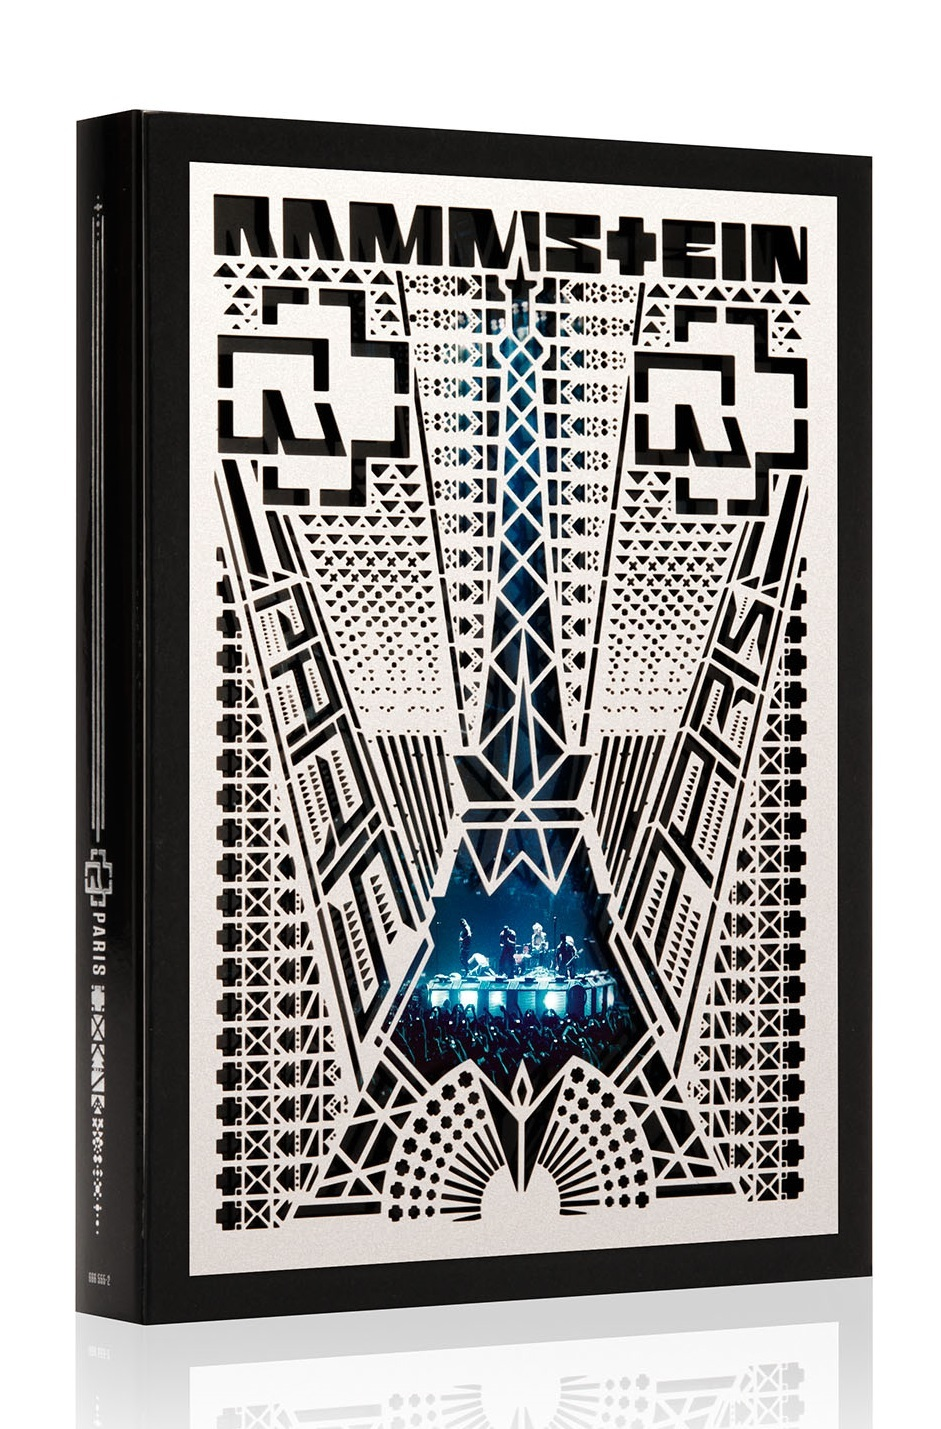 Paris Special Edition (Fan Edition) by Rammstein image